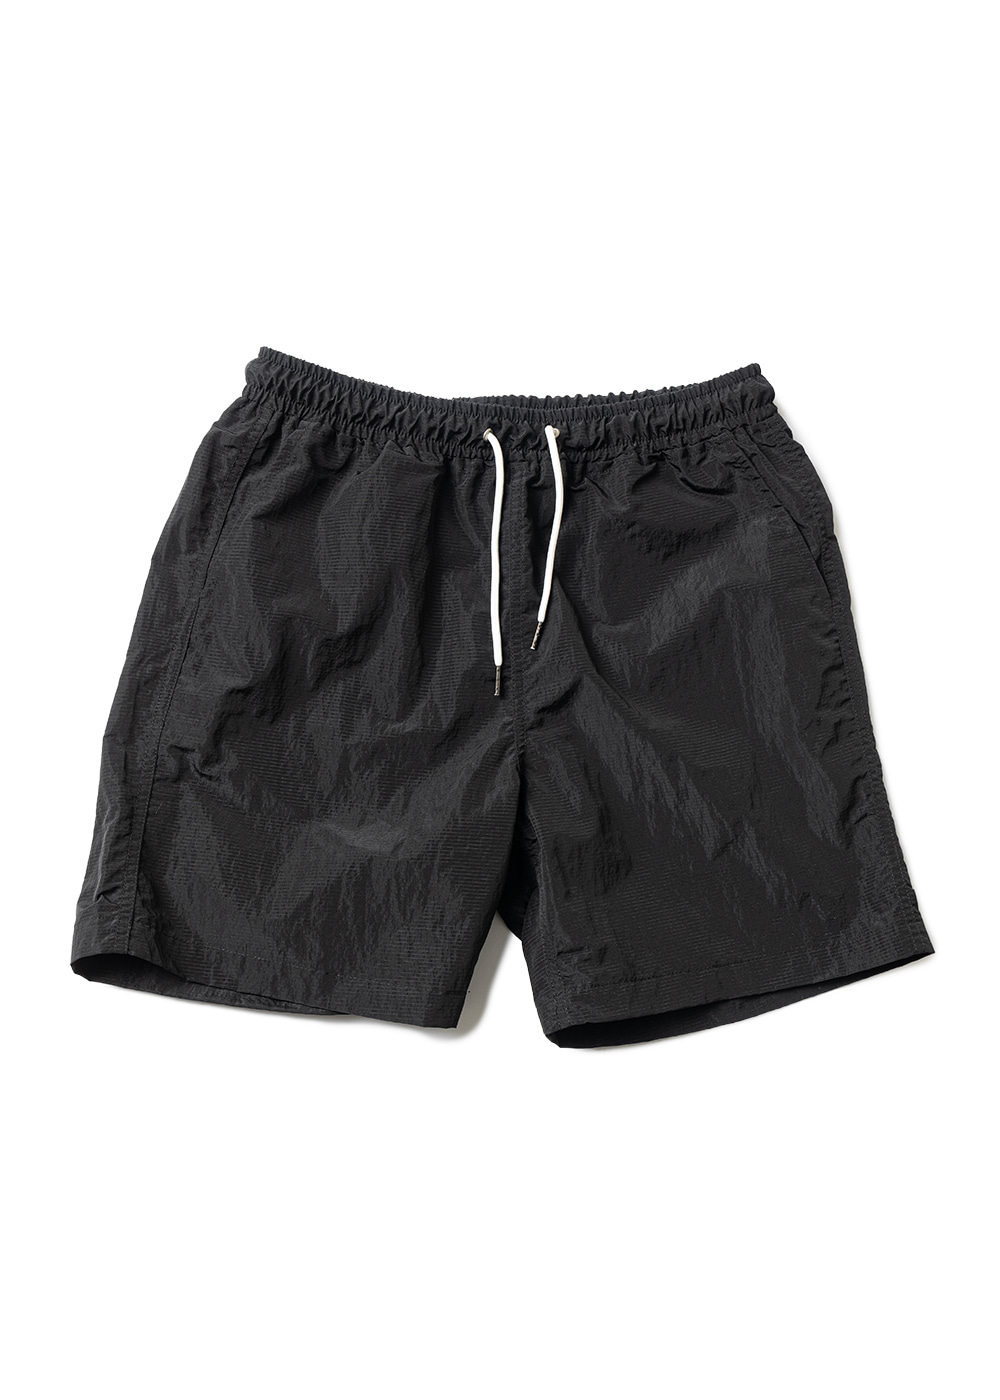 NYLON METAL SHORT PANTS MUZSP004-BK